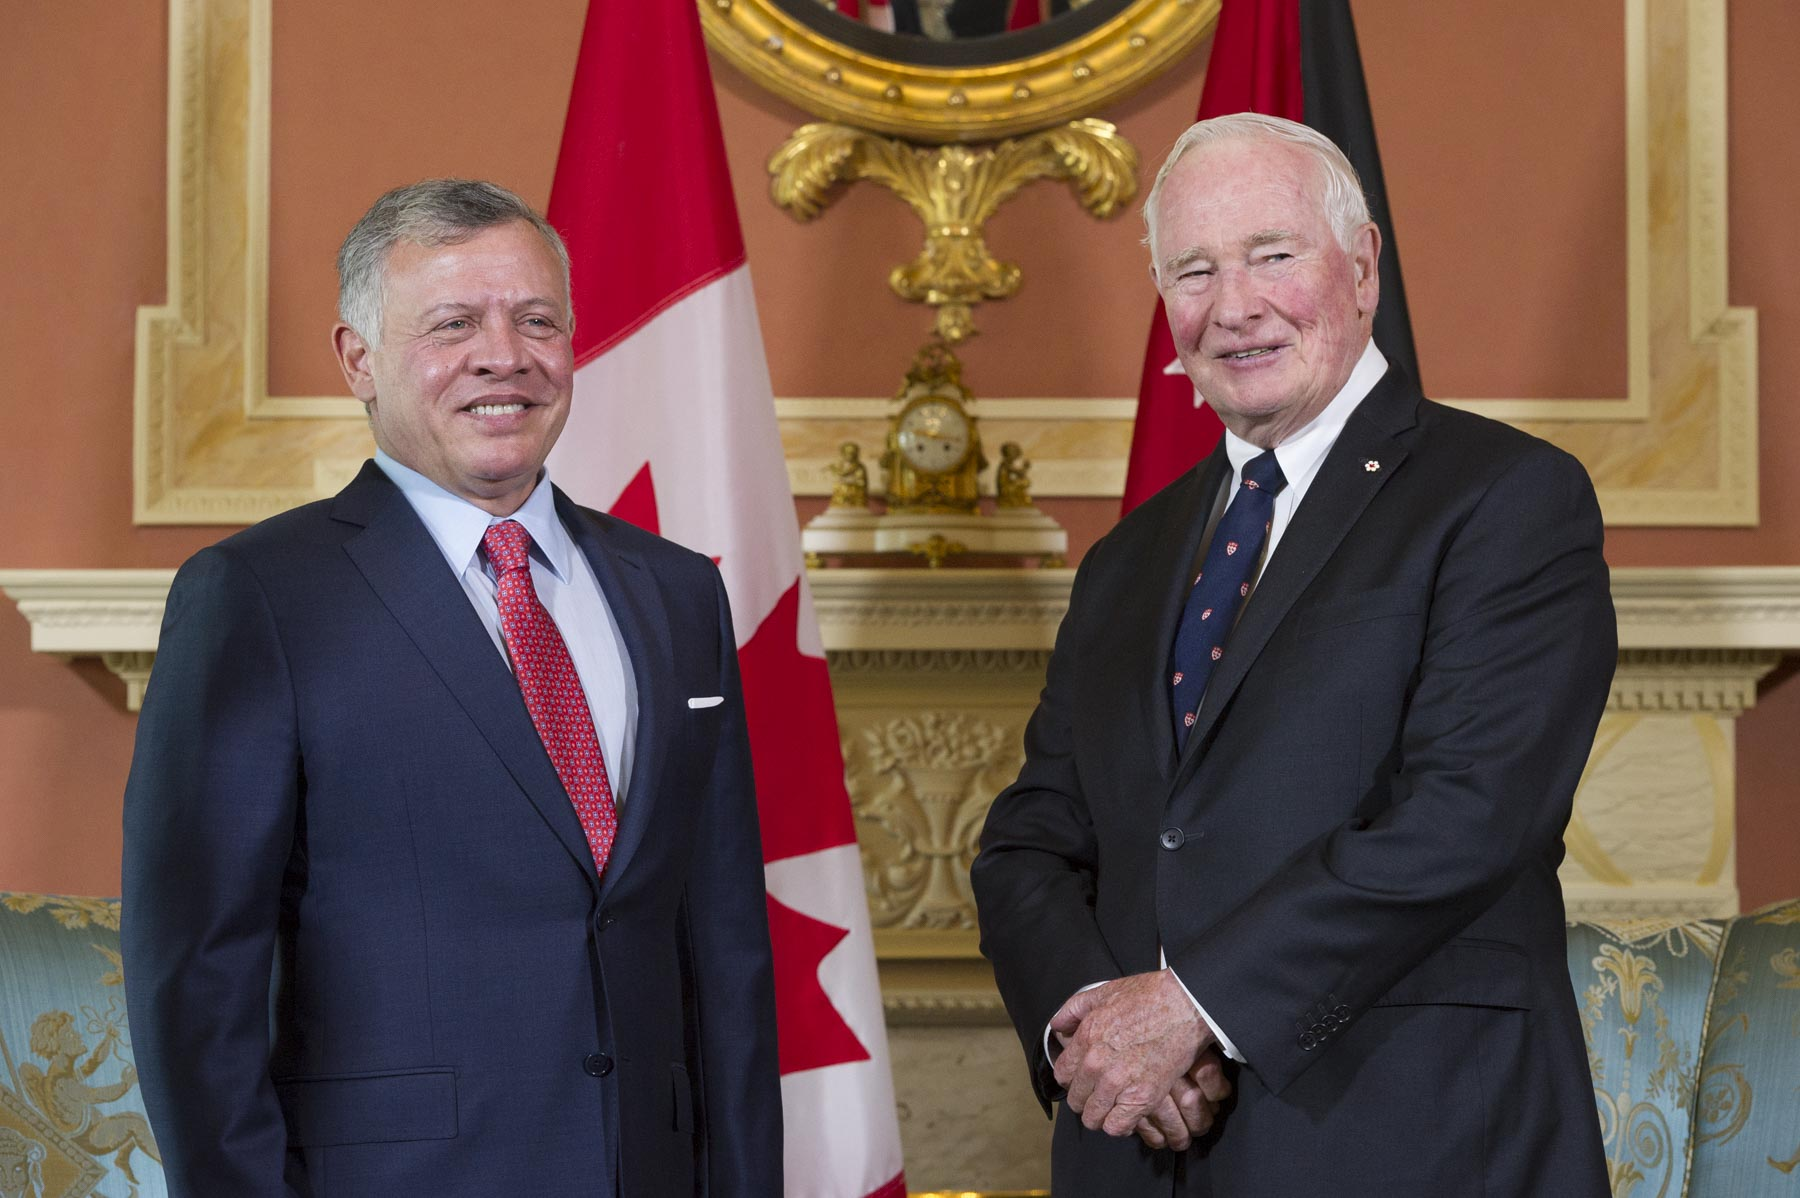 His Majesty King Abdullah II then met with the Governor General.